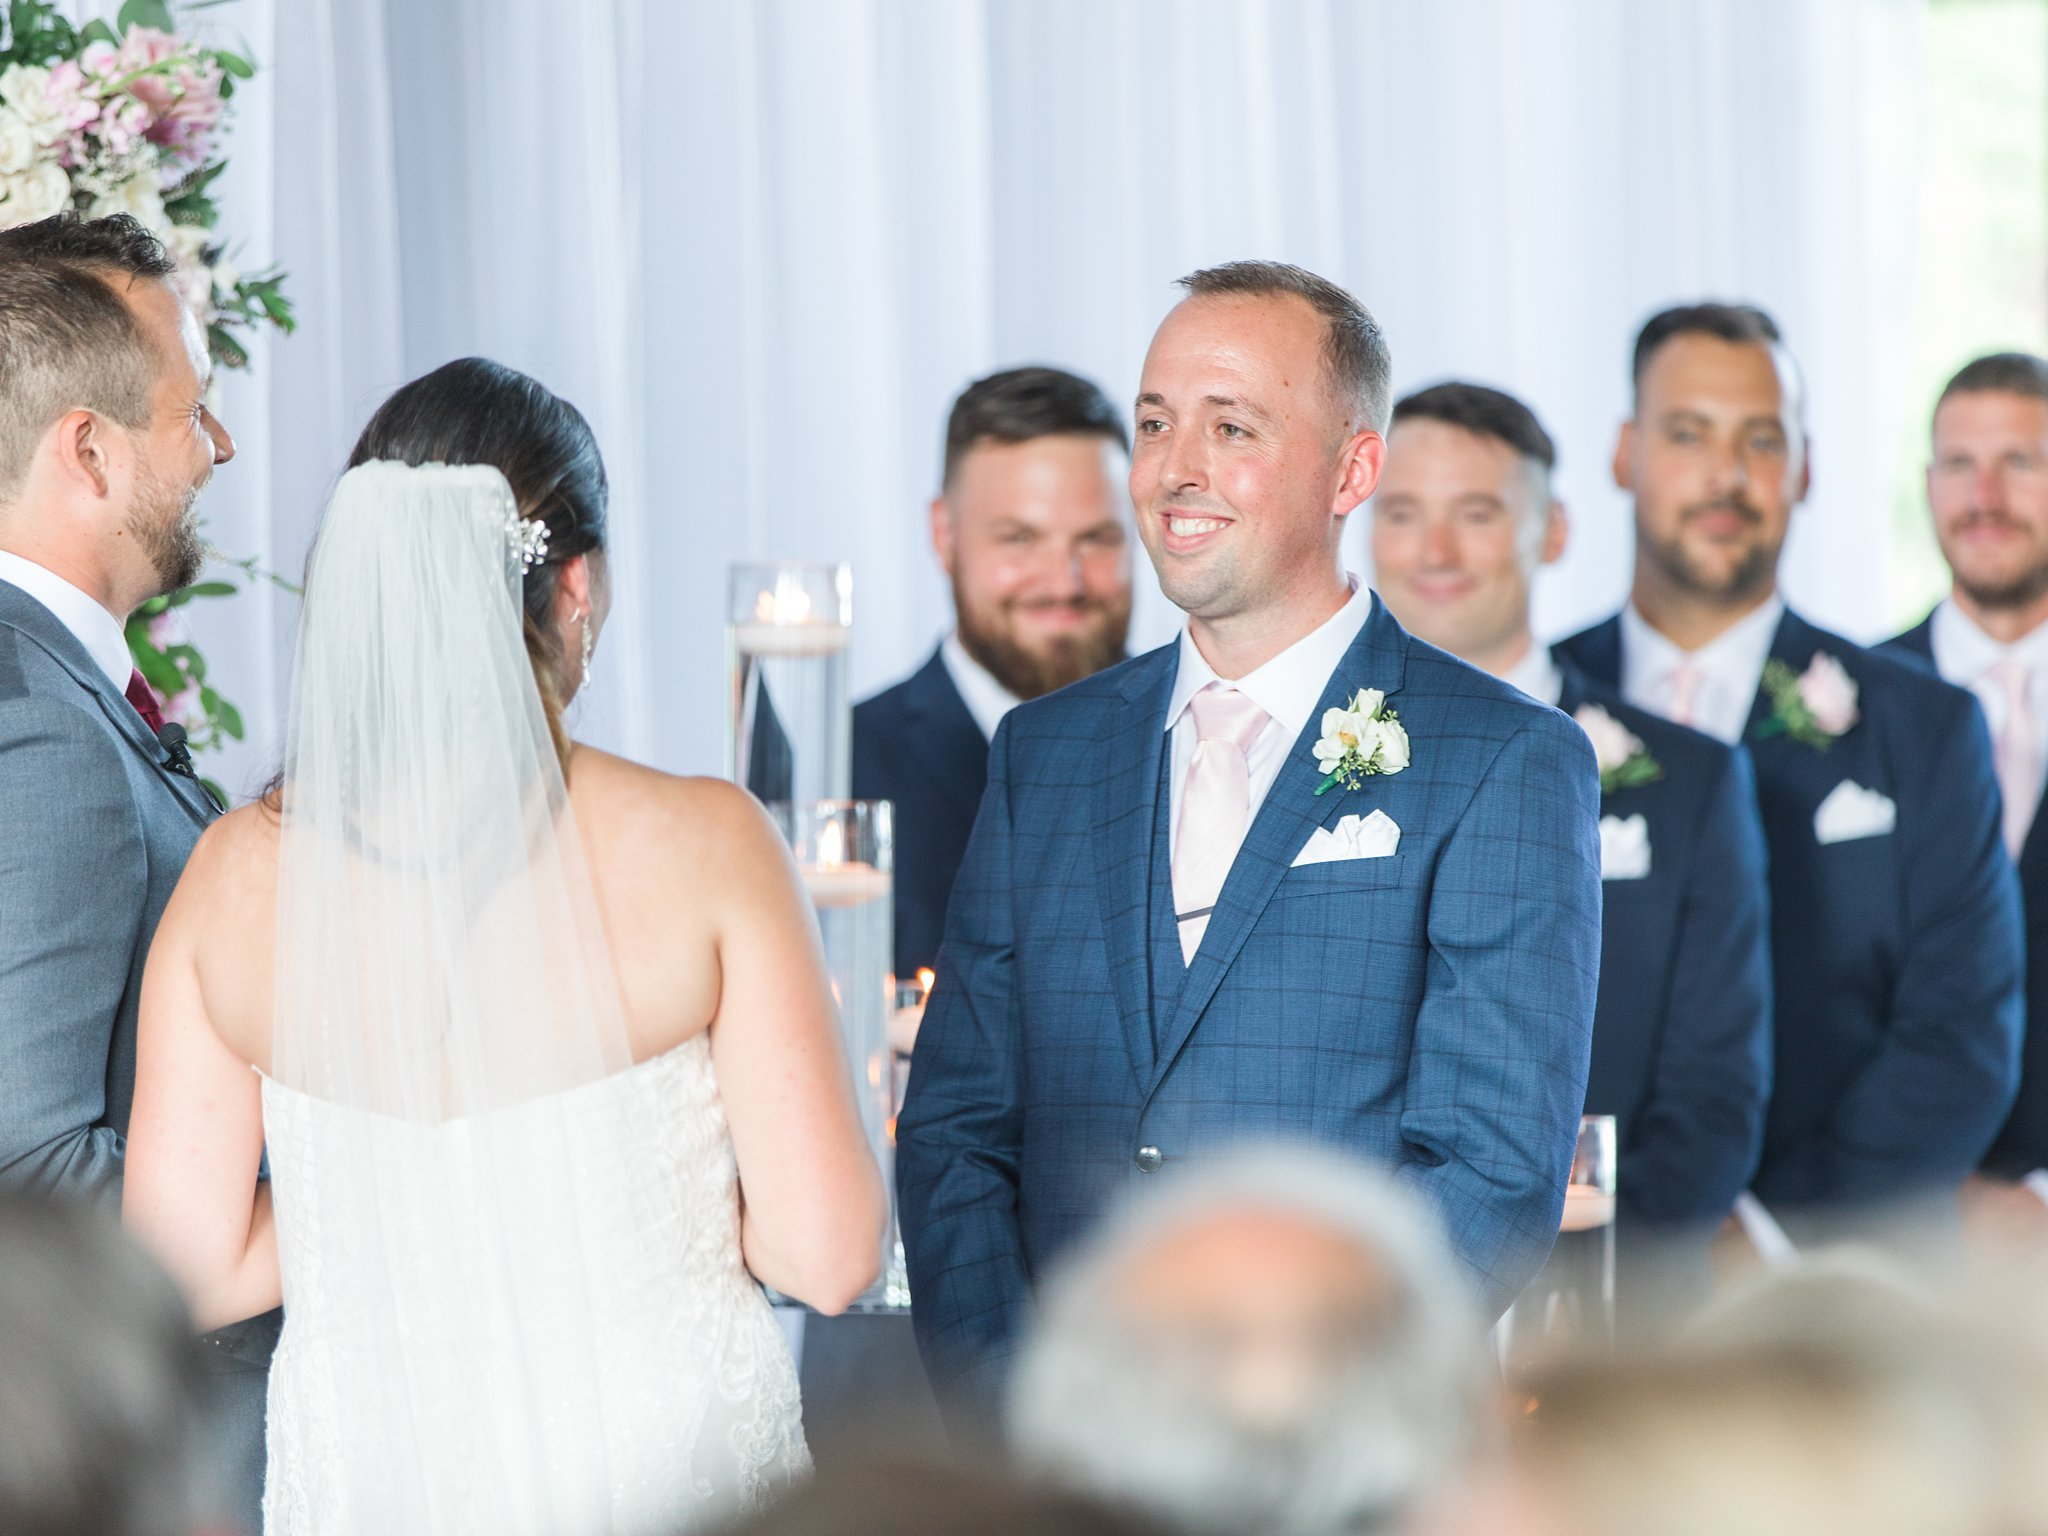 Groom's checkered blue suit at ceremony Horticulture Building wedding at Lansdowne Amy Pinder Photography